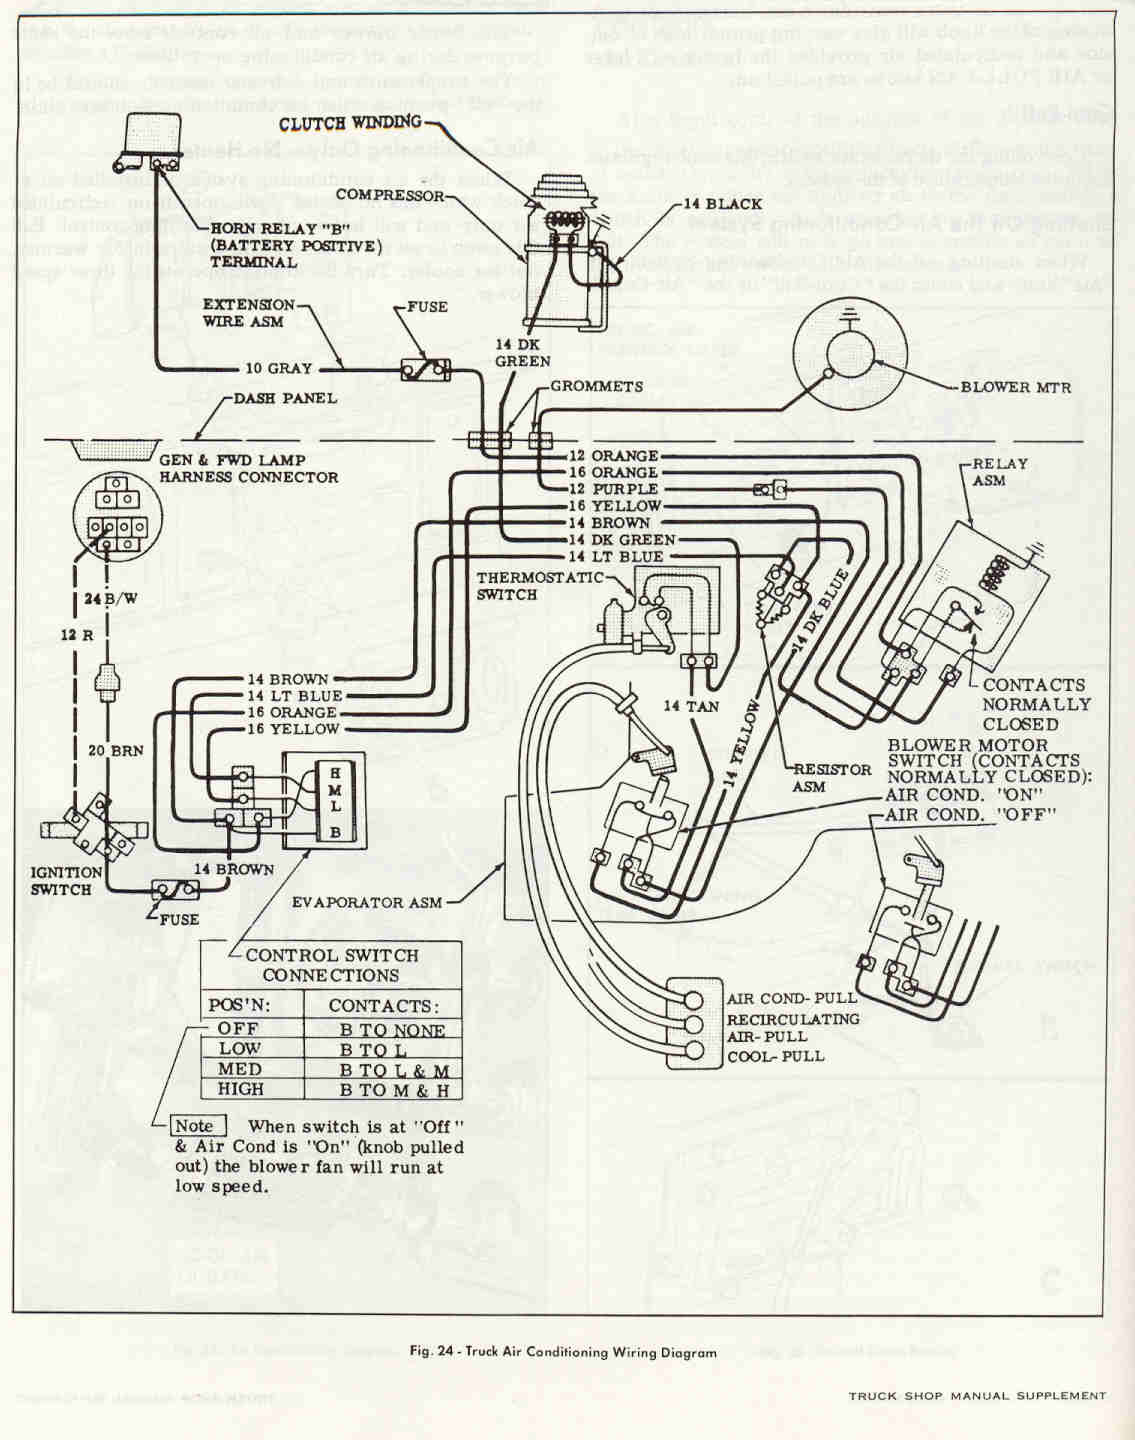 Wiring Diagram 65 Chevy C10 : 27 Wiring Diagram Images